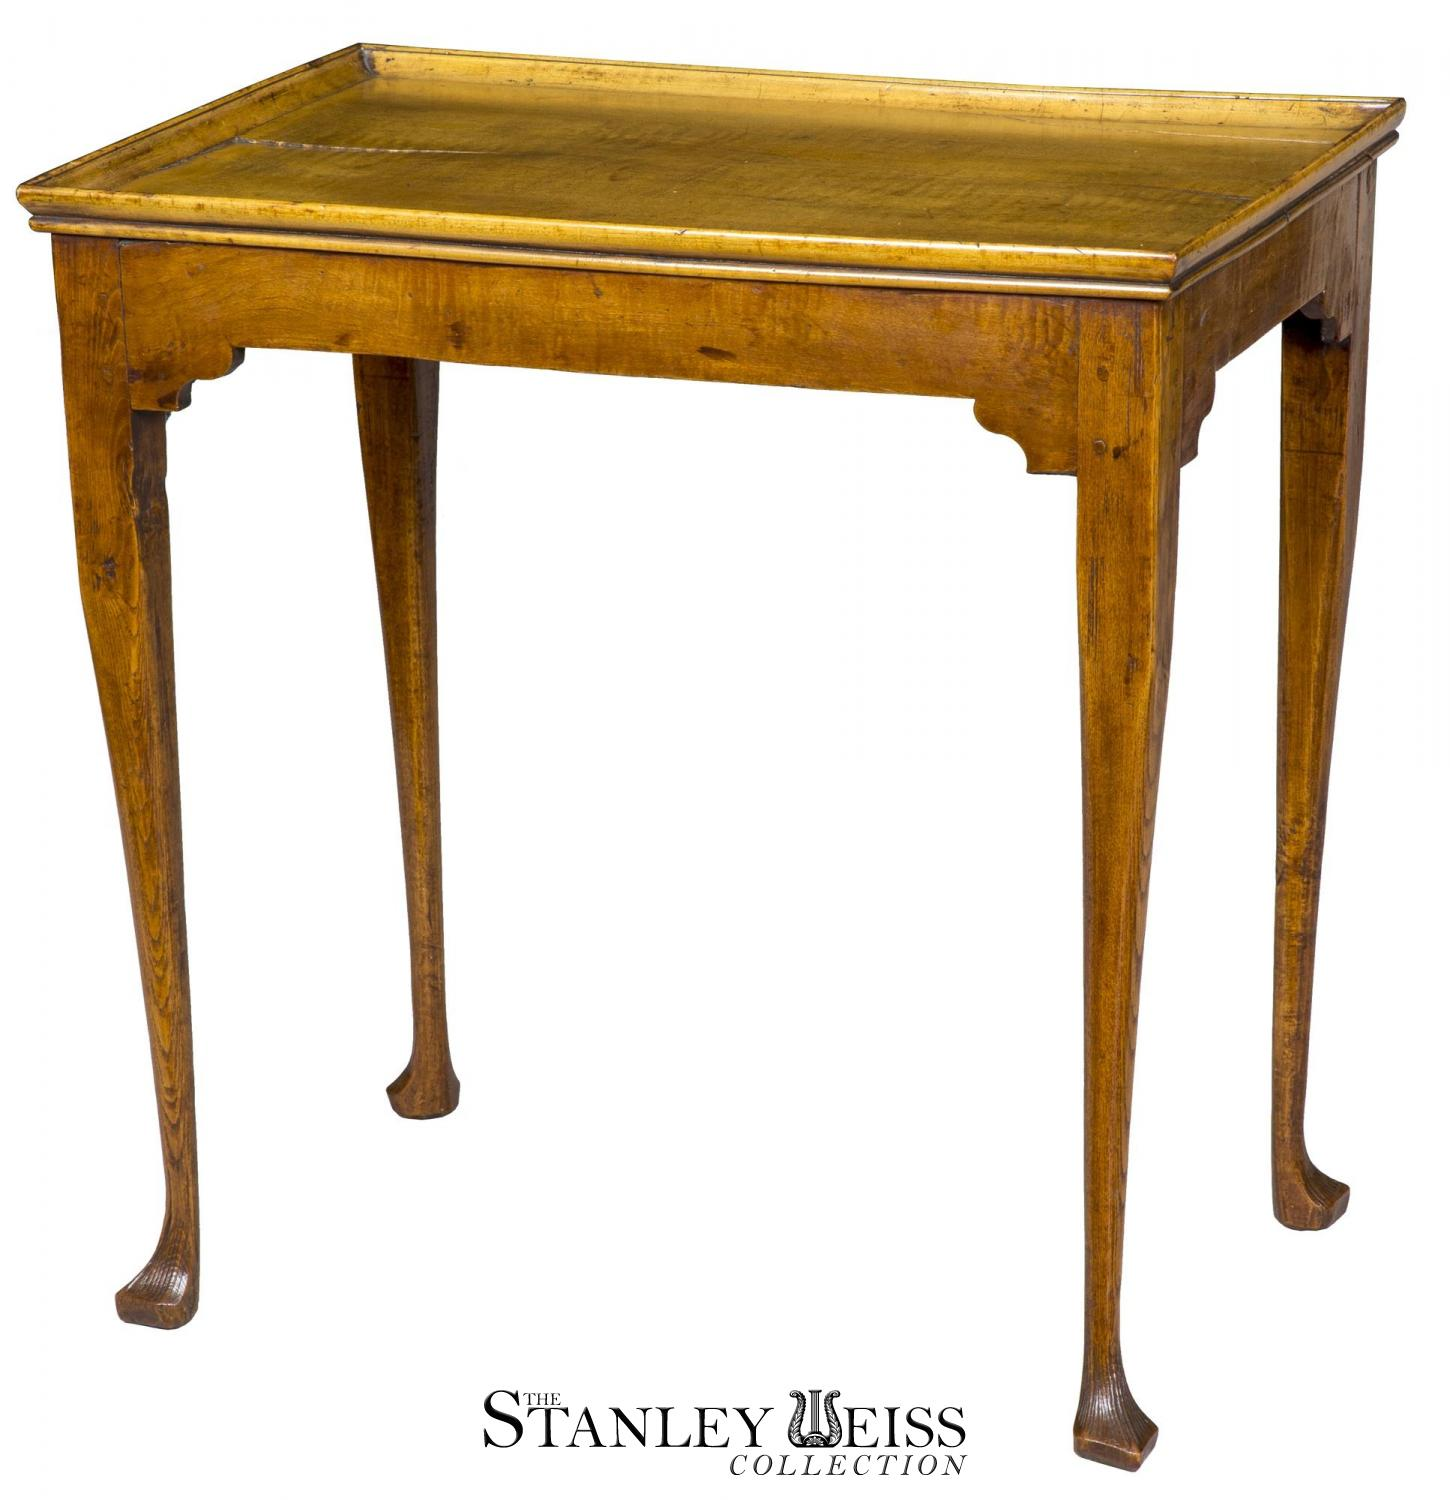 An Early Queen Anne Tray Top Tea Table, England or America